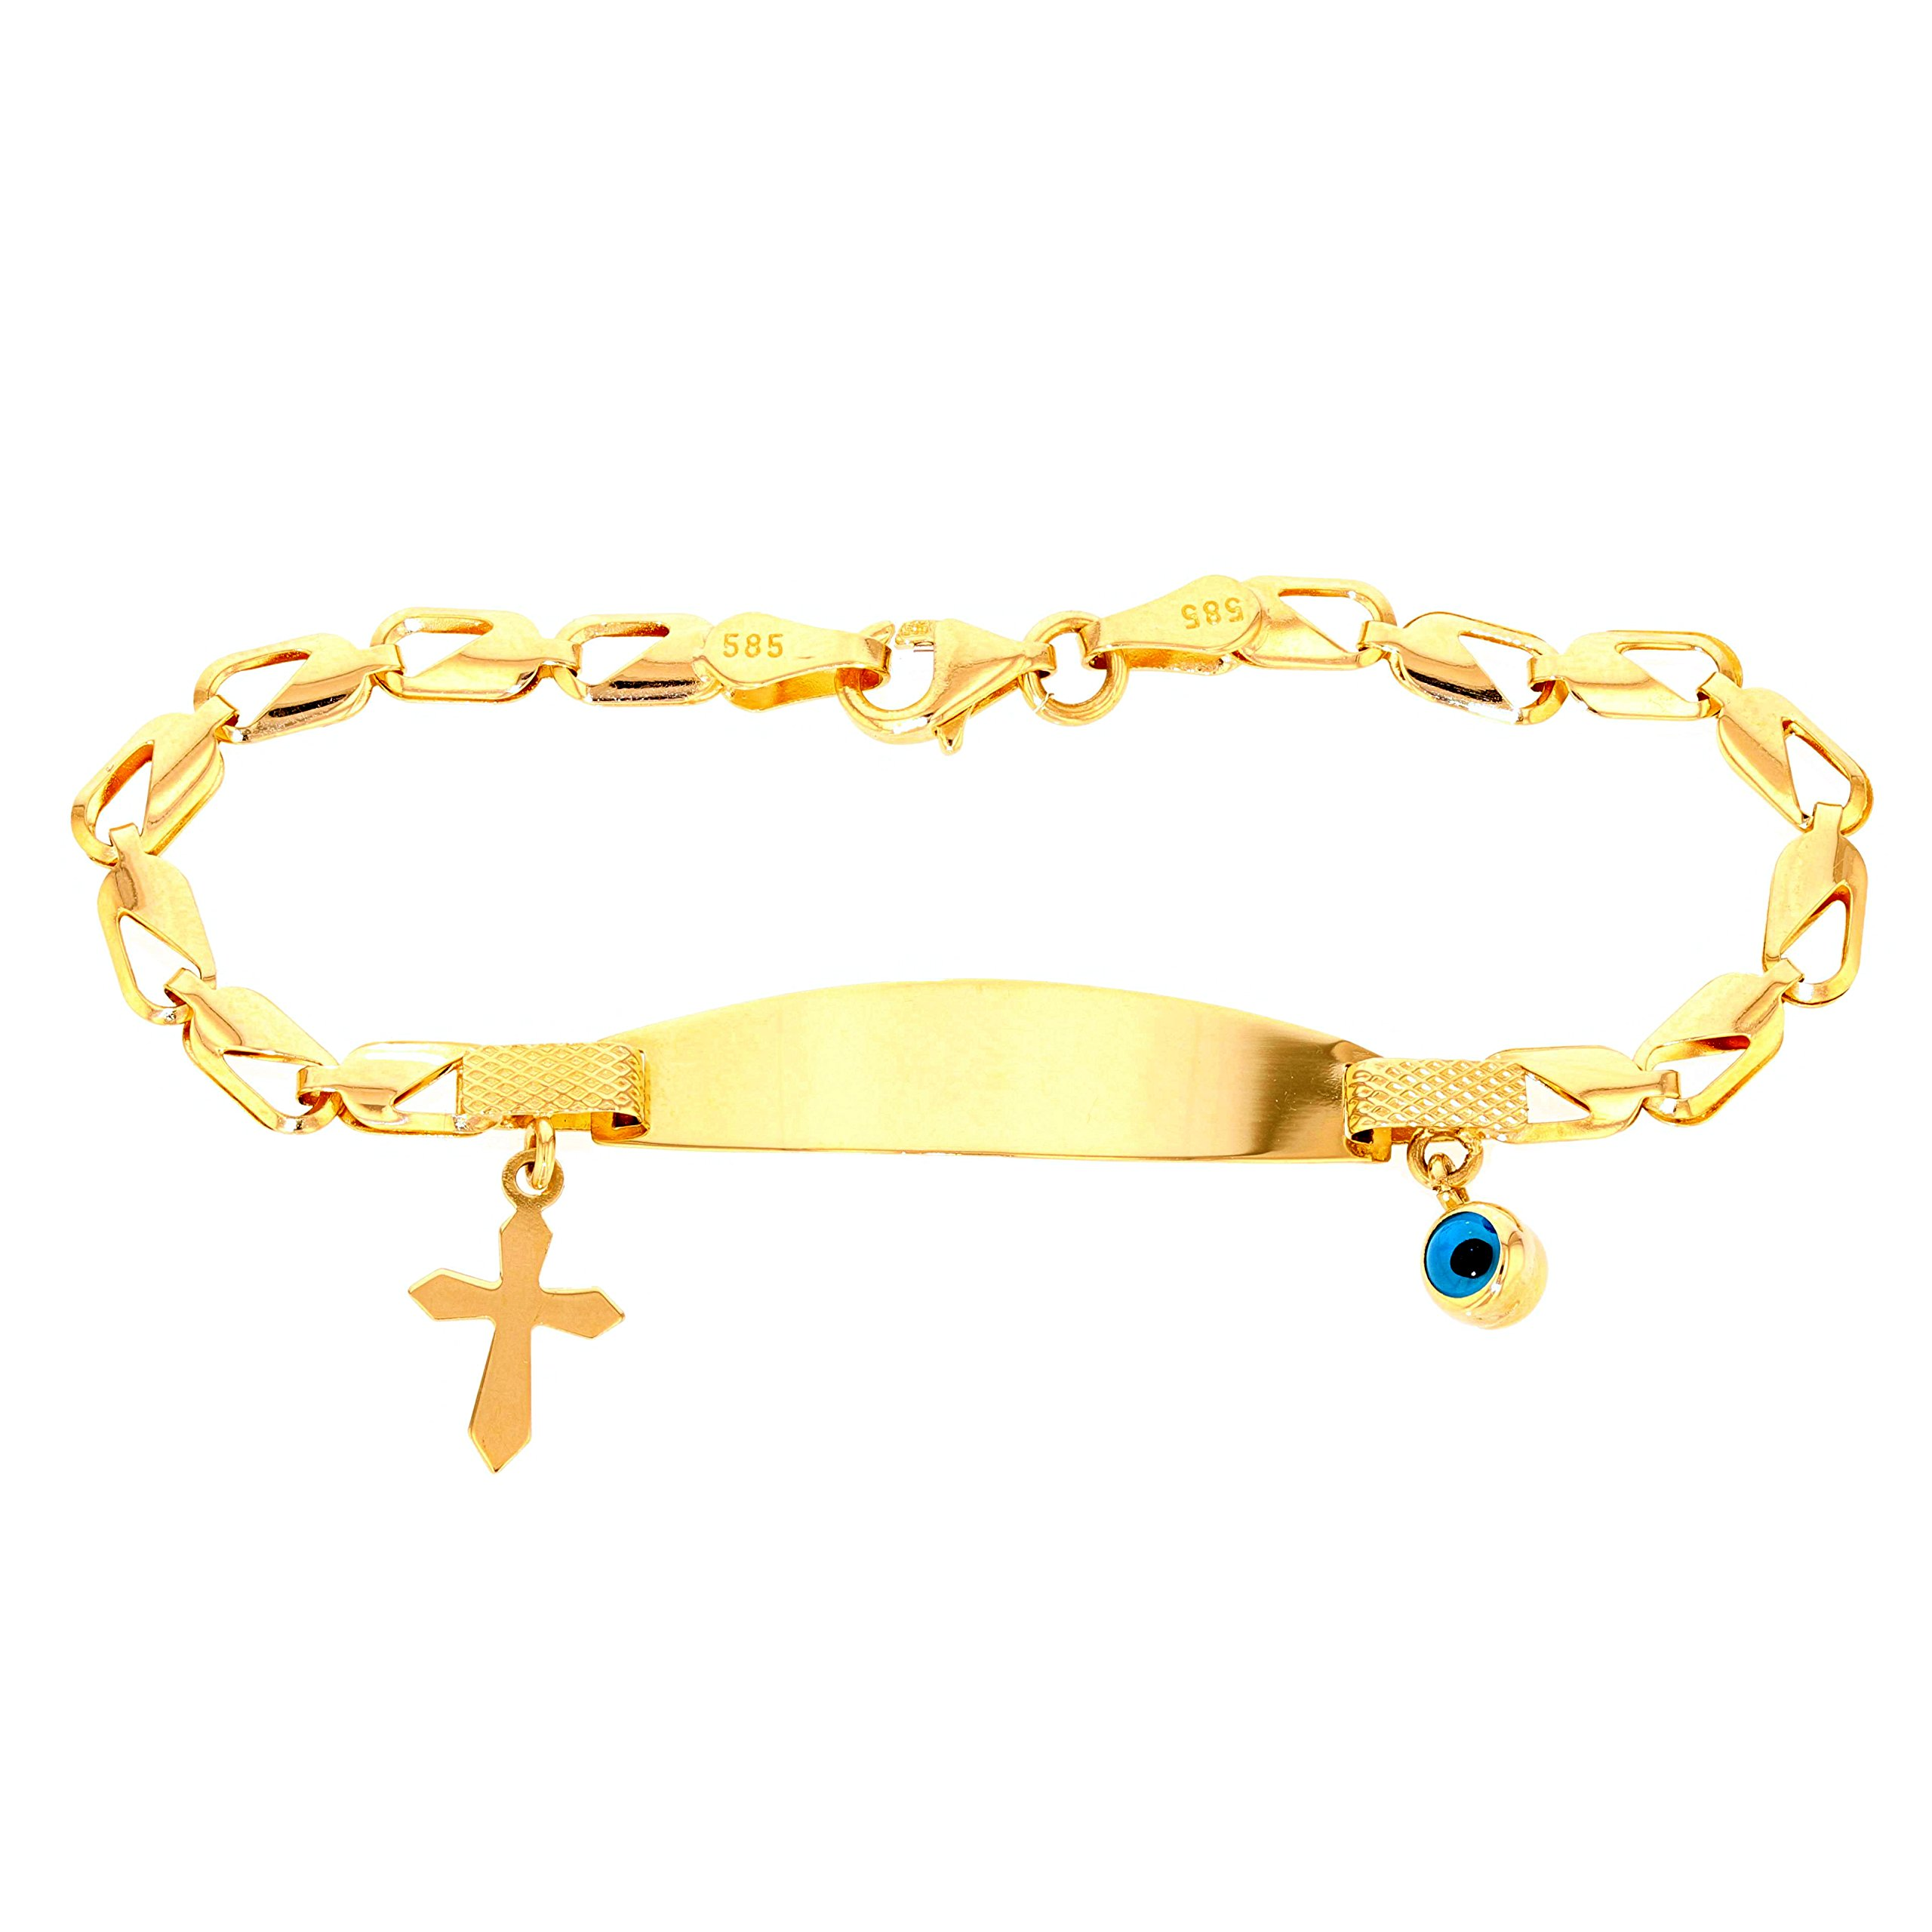 Polished 14k Gold Religious Cross Baby Bracelet with Blue Evil Eye 6'' by Evil Eye by Jewelry America